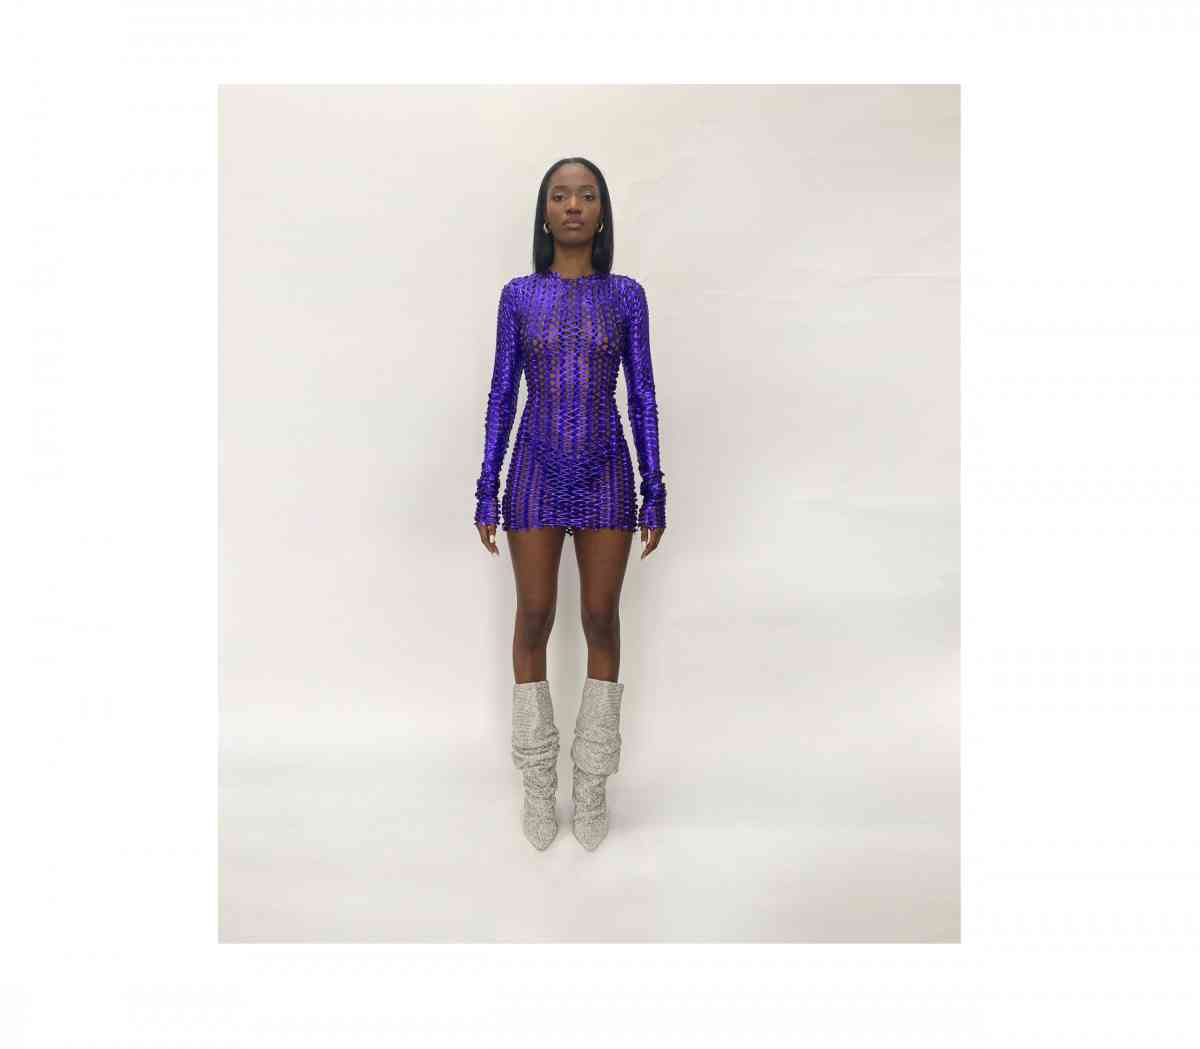 Kylie Jenner sizzled in a Formfitting metallic purple TLZ L'FEMME fishnet mini dress with a fishnet fabric, extra long sleeves and a crew neck